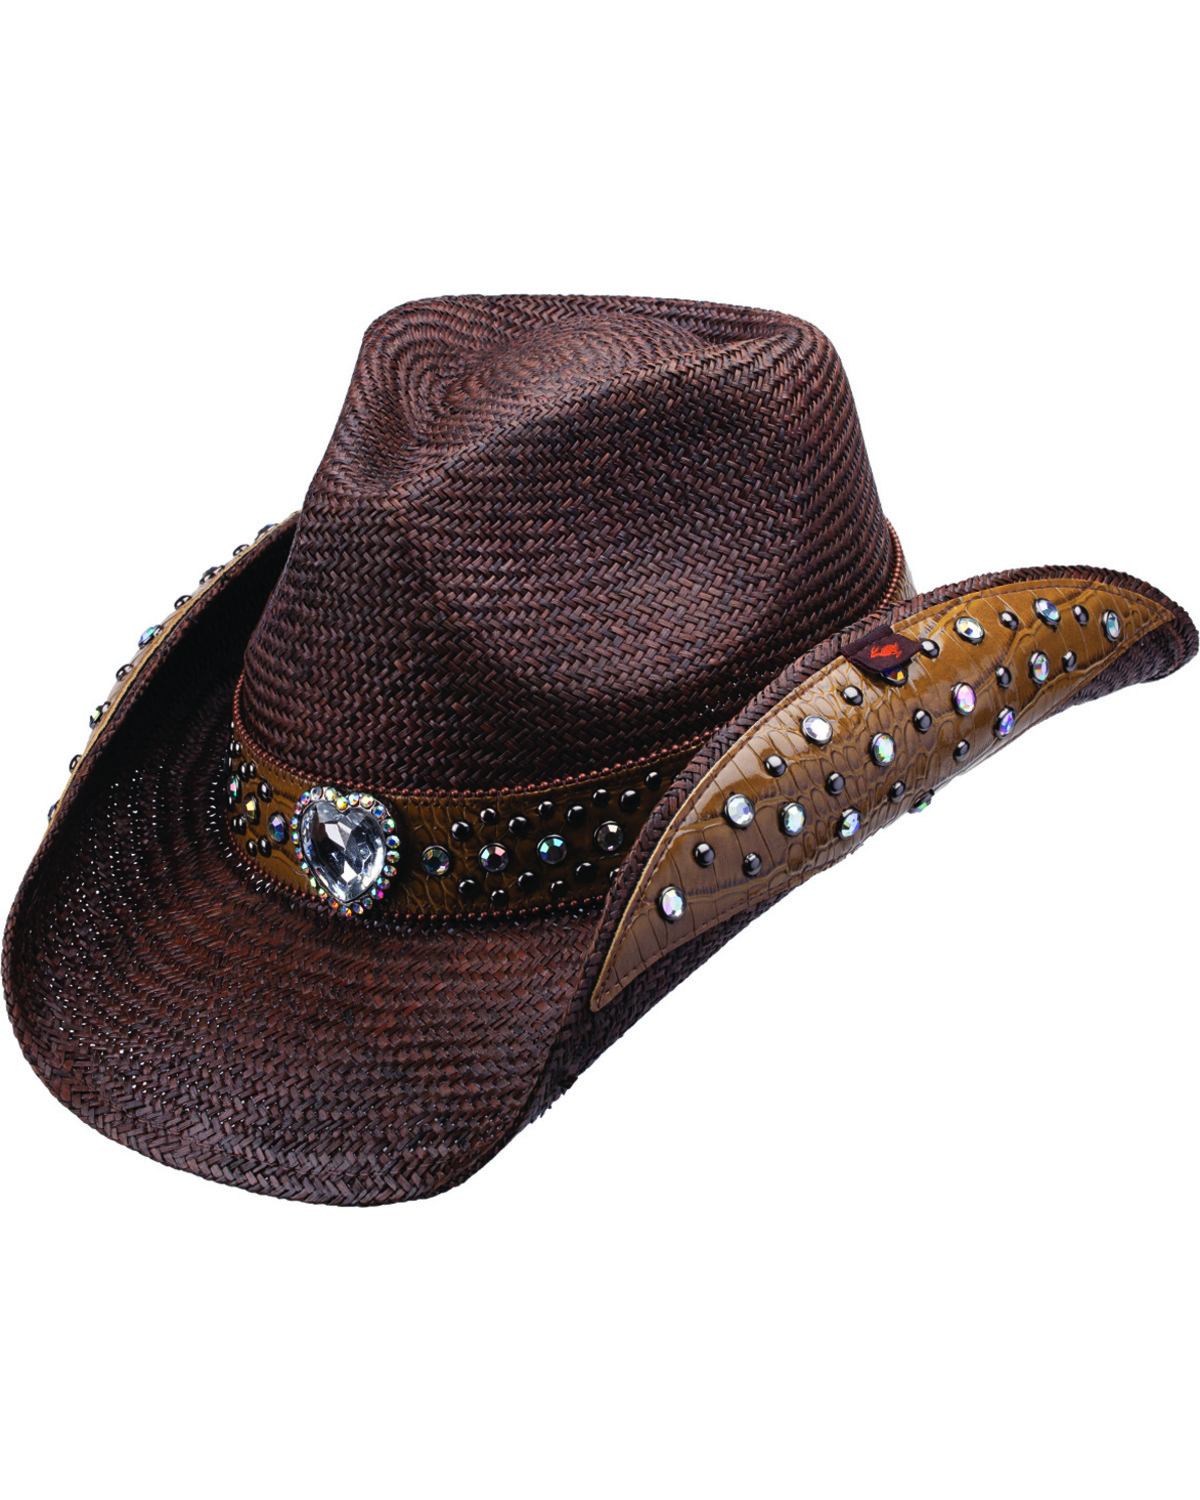 Peter Grimm Bela Heart and Stud Embellished Dark Brown Panama Straw Cowgirl  Hat c9e3a47ed5e